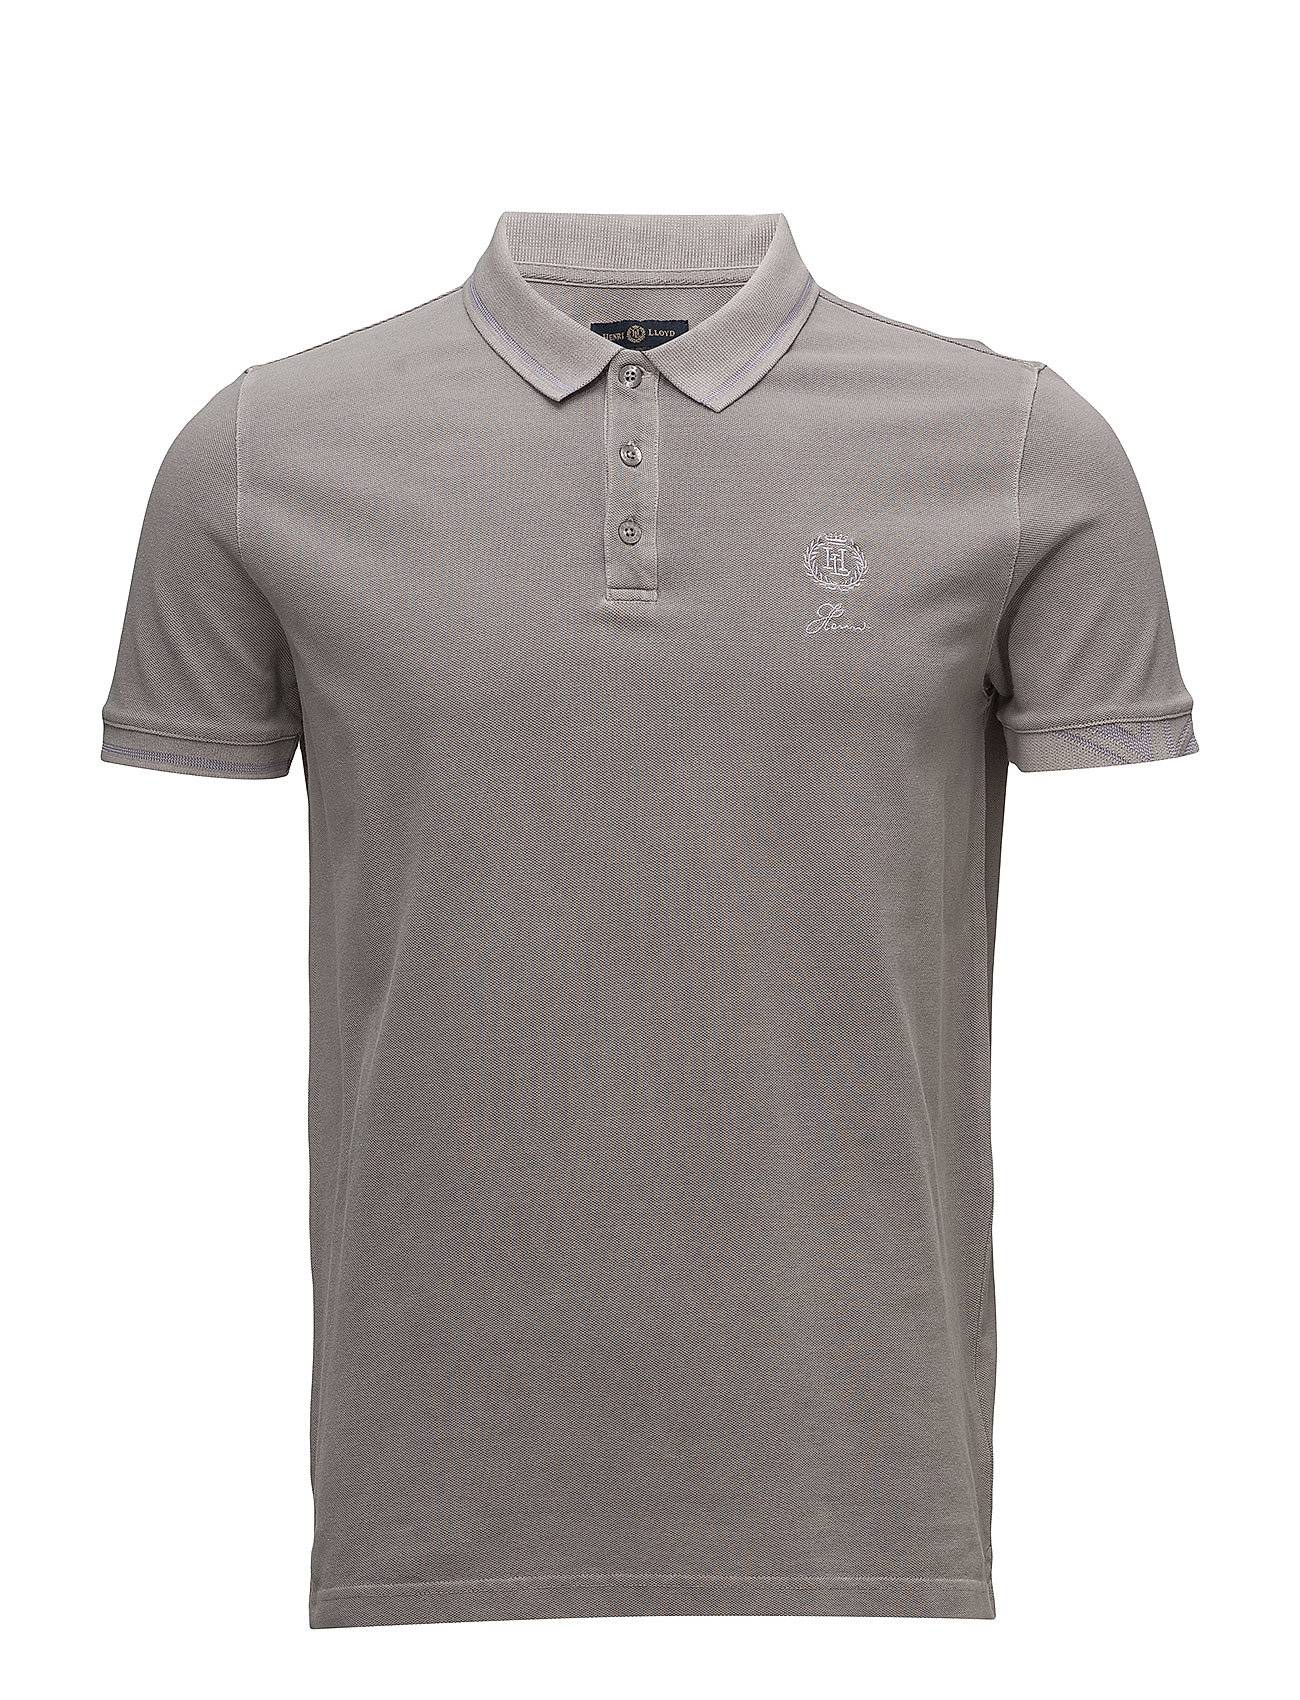 Henri Lloyd Henri Club Branded Polo